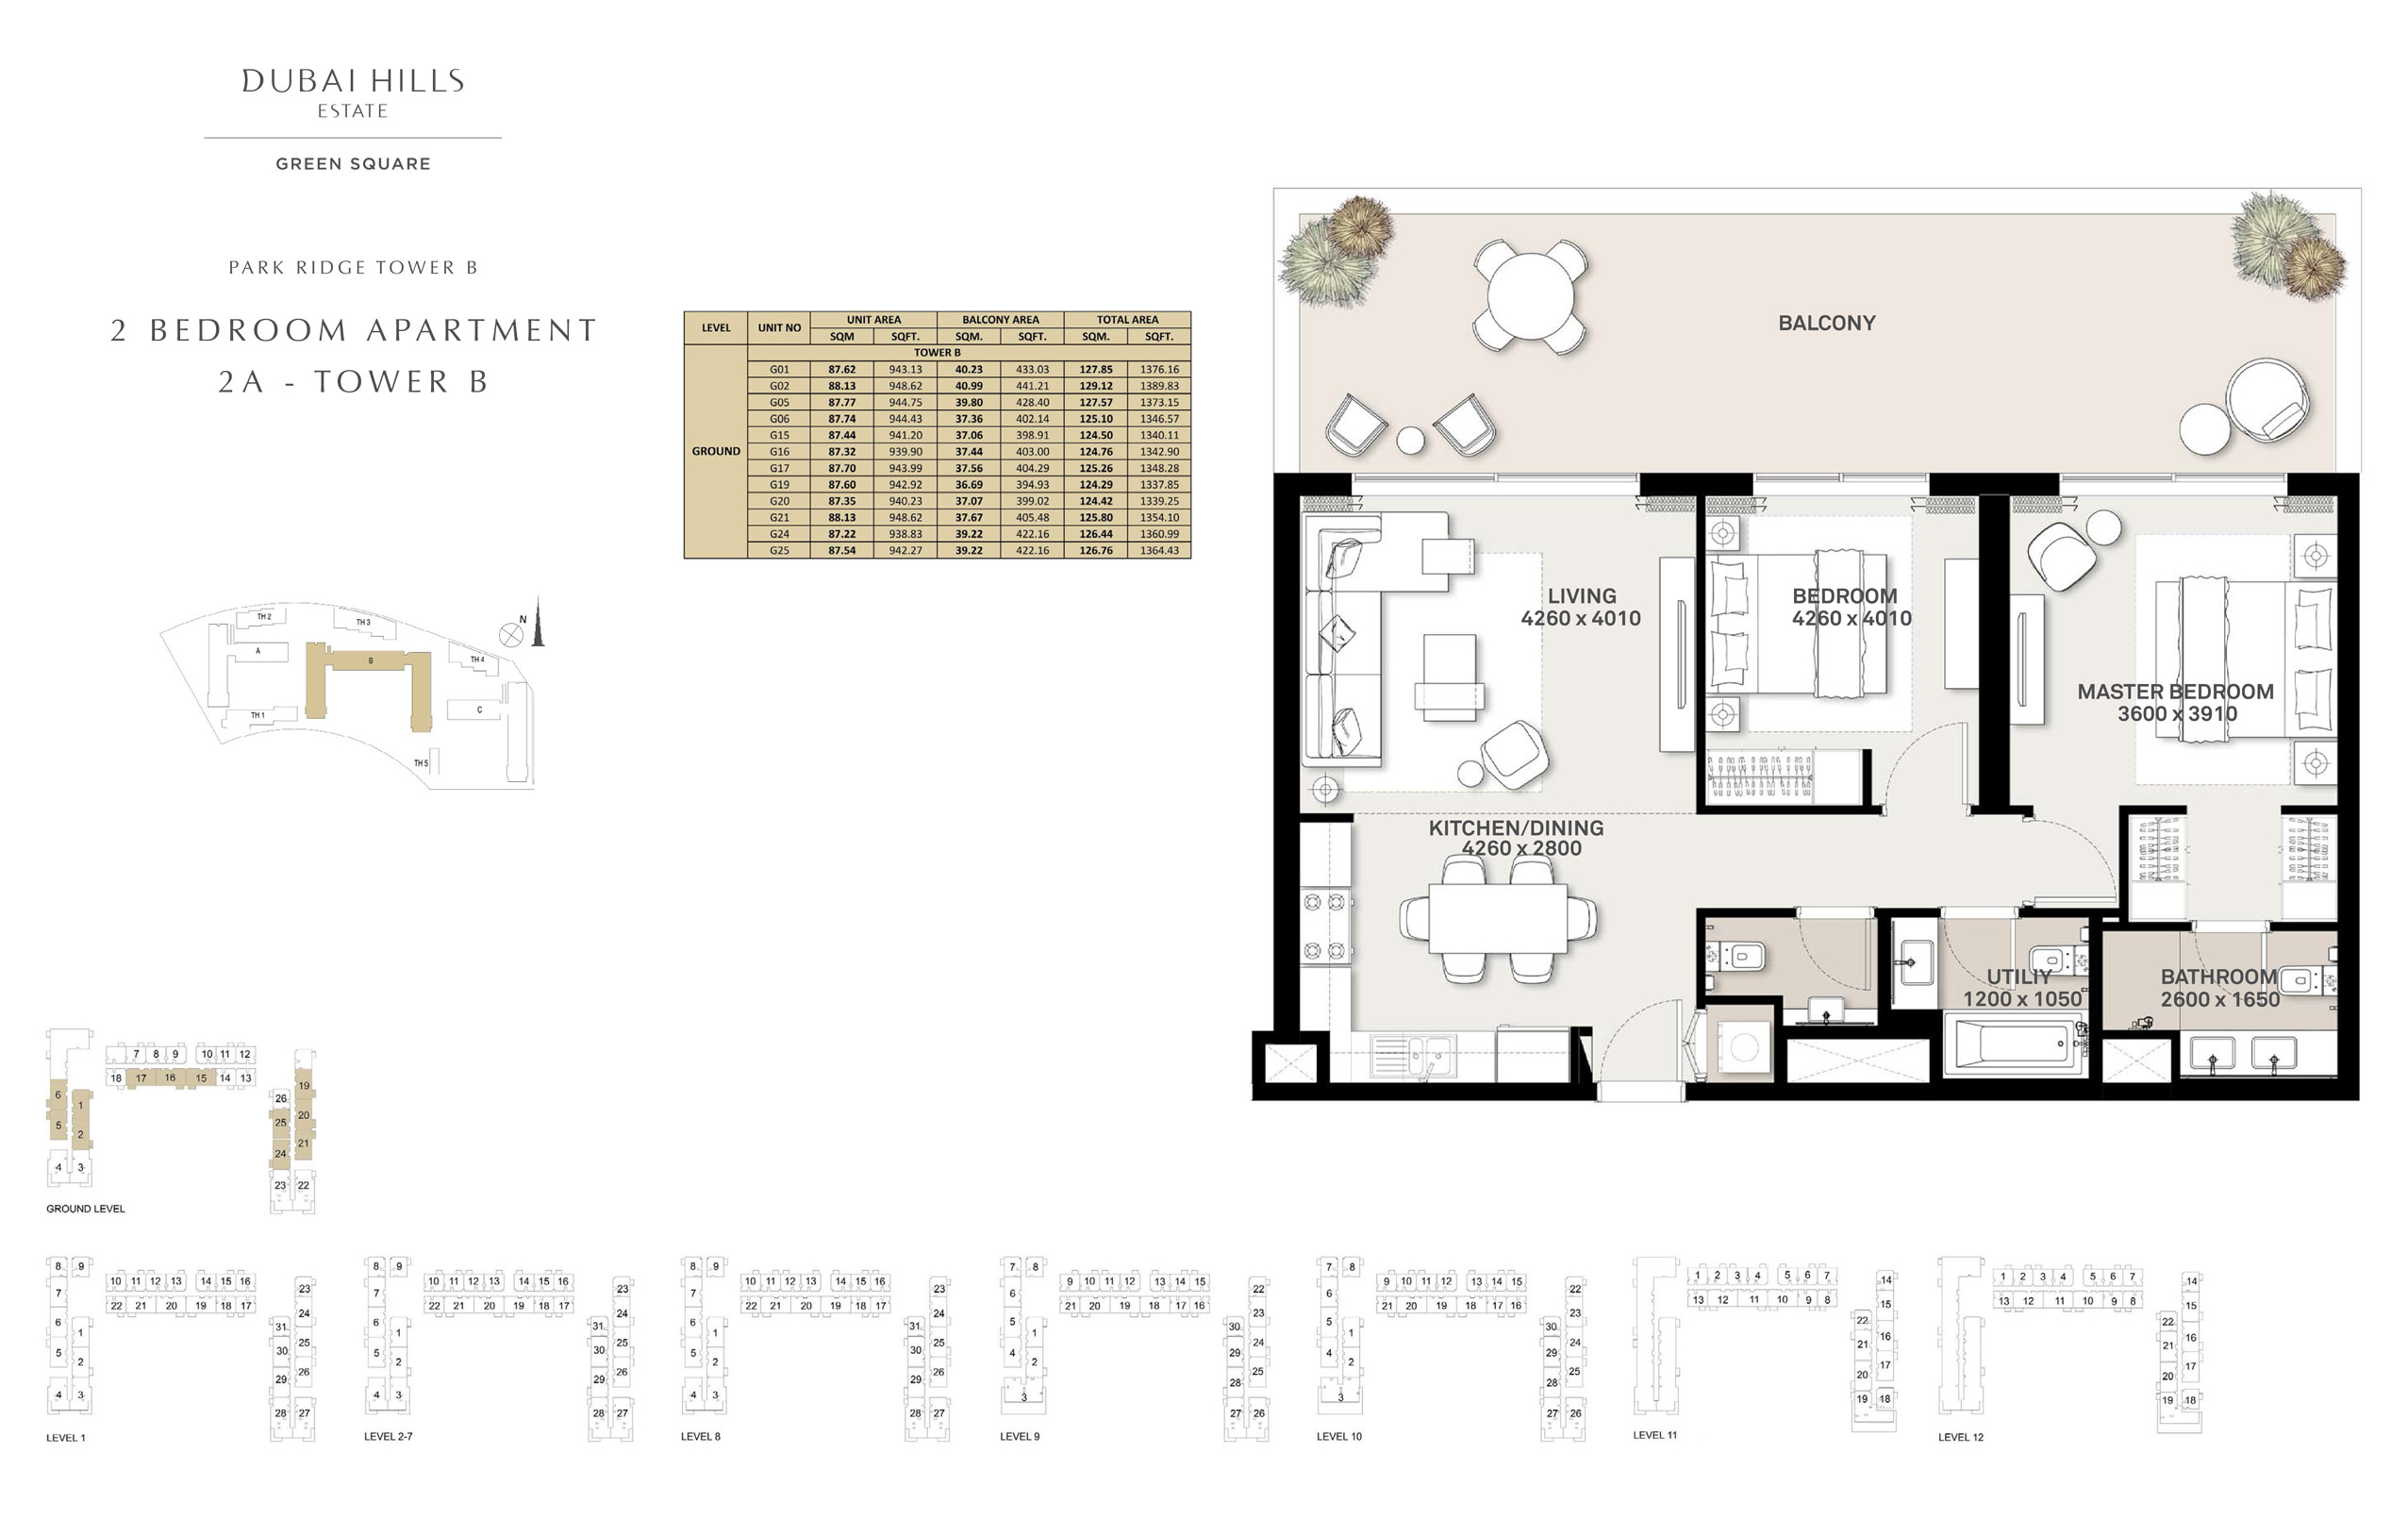 2 Bedroom Apartment 2 A - Tower B, Size 1337 sq ft